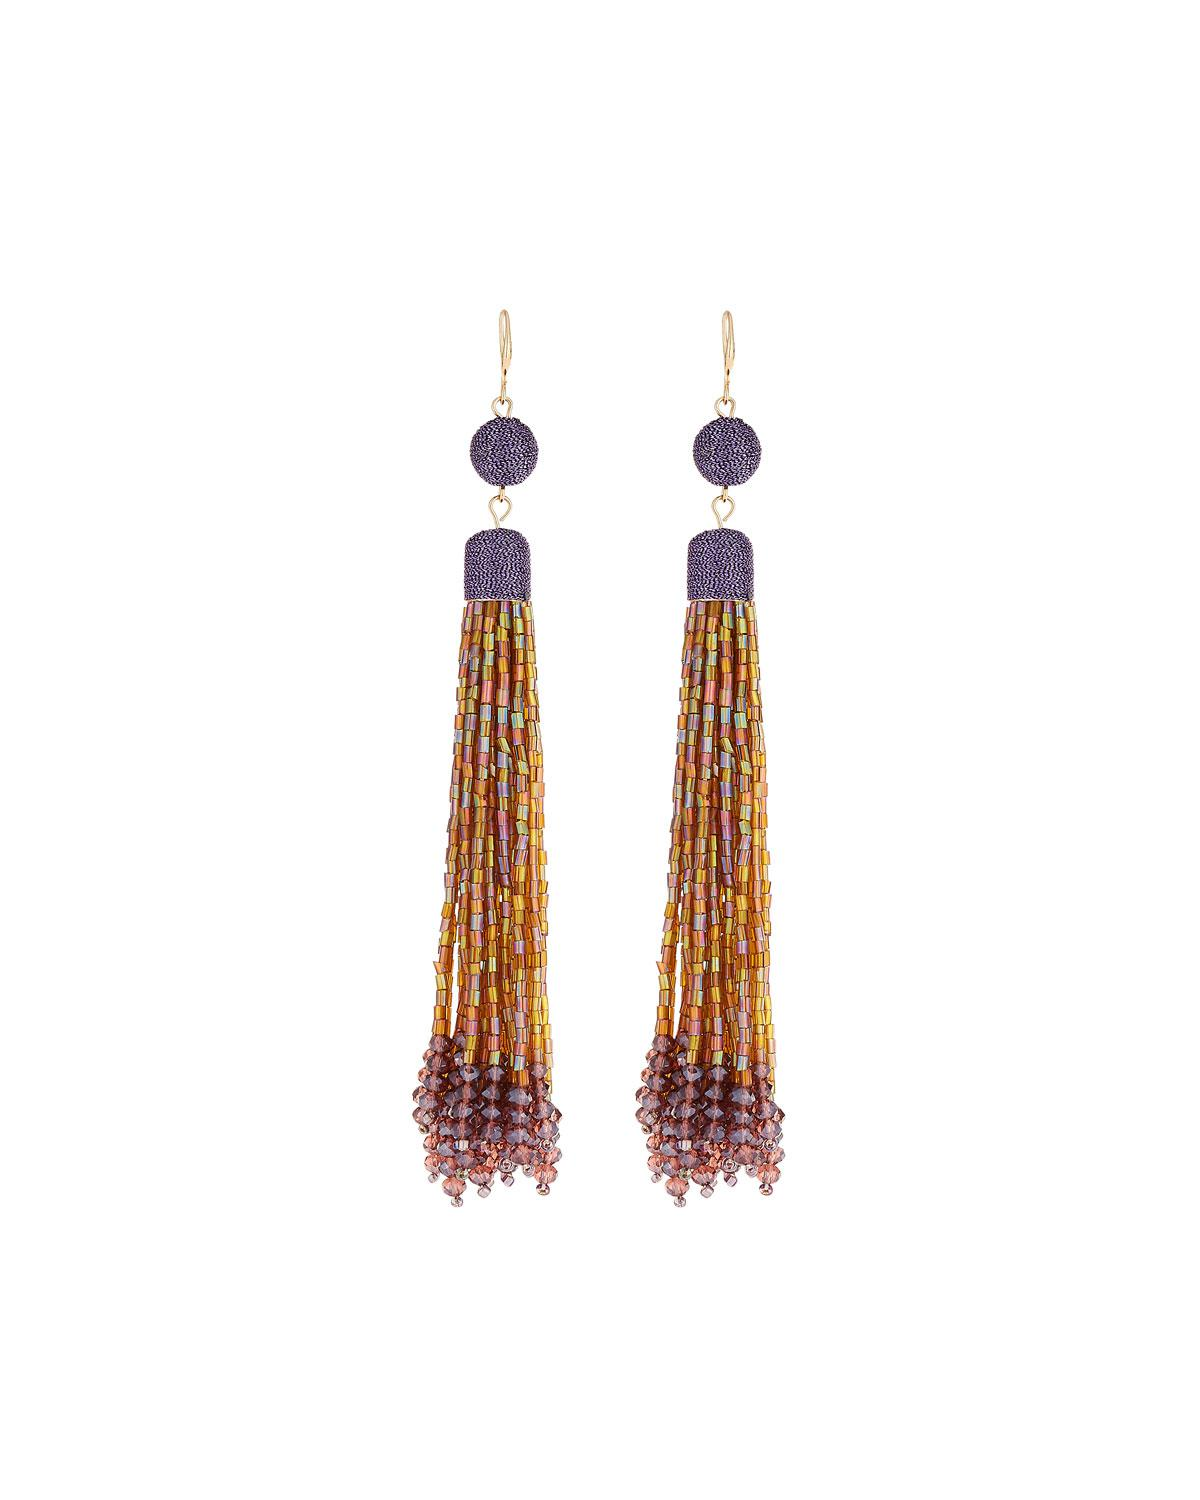 Lydell Nyc Beaded Linear Tassel Earrings, Green